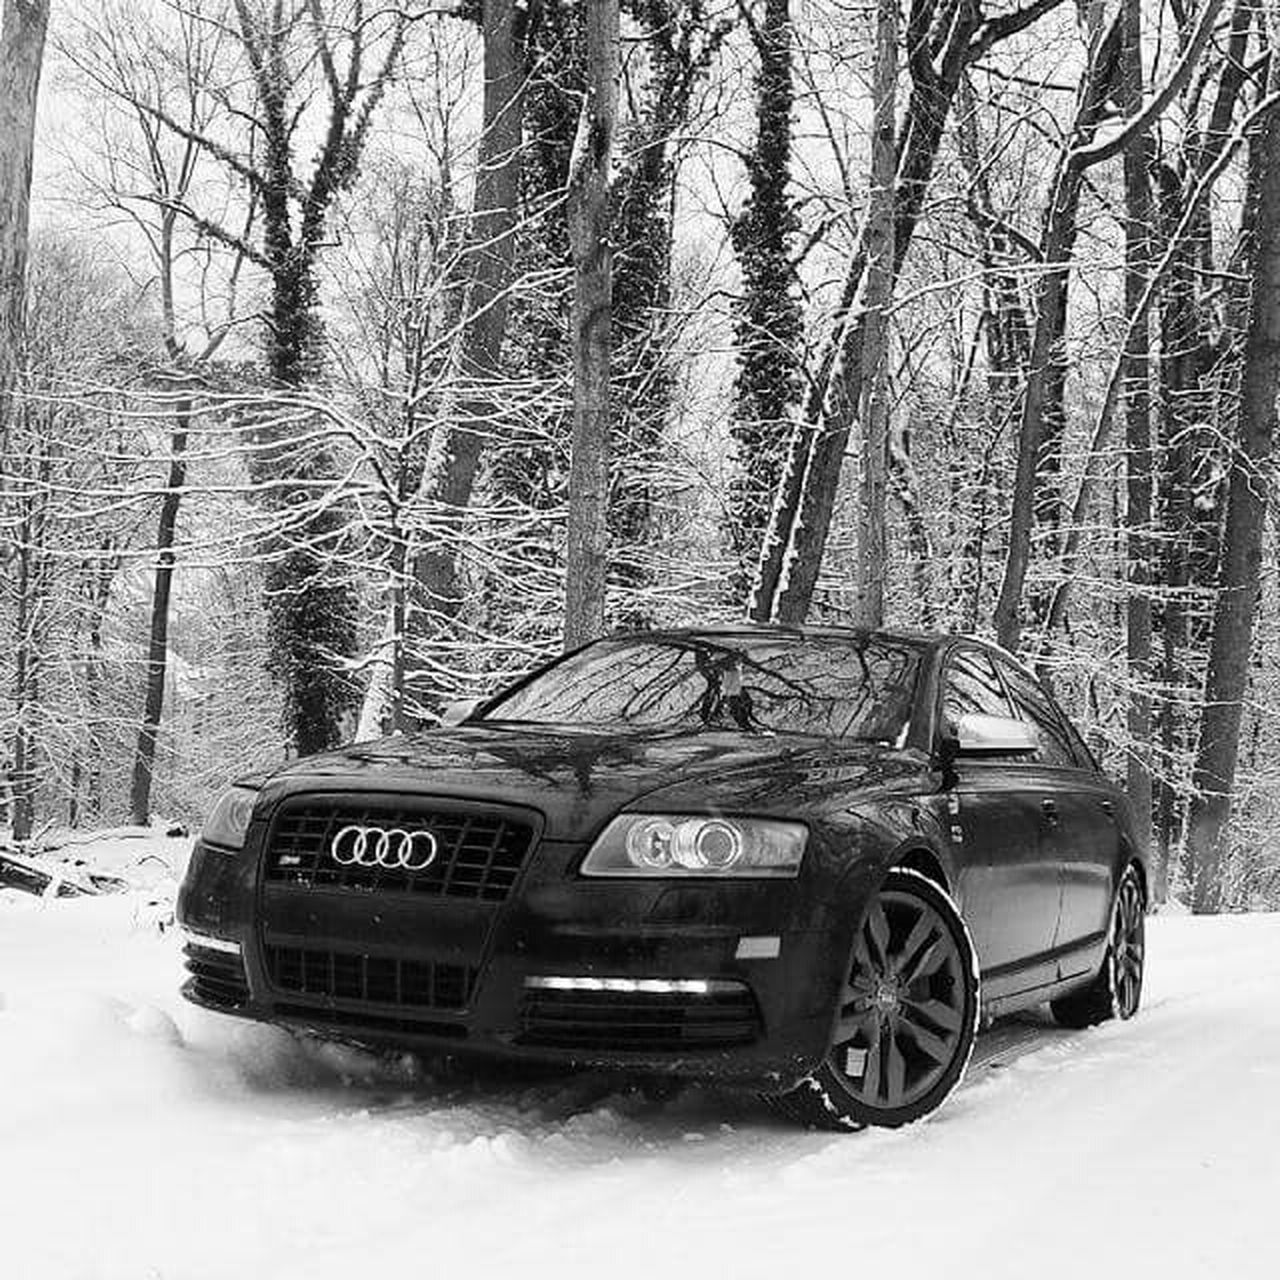 winter, snow, cold temperature, tree, car, transportation, forest, bare tree, no people, nature, outdoors, day